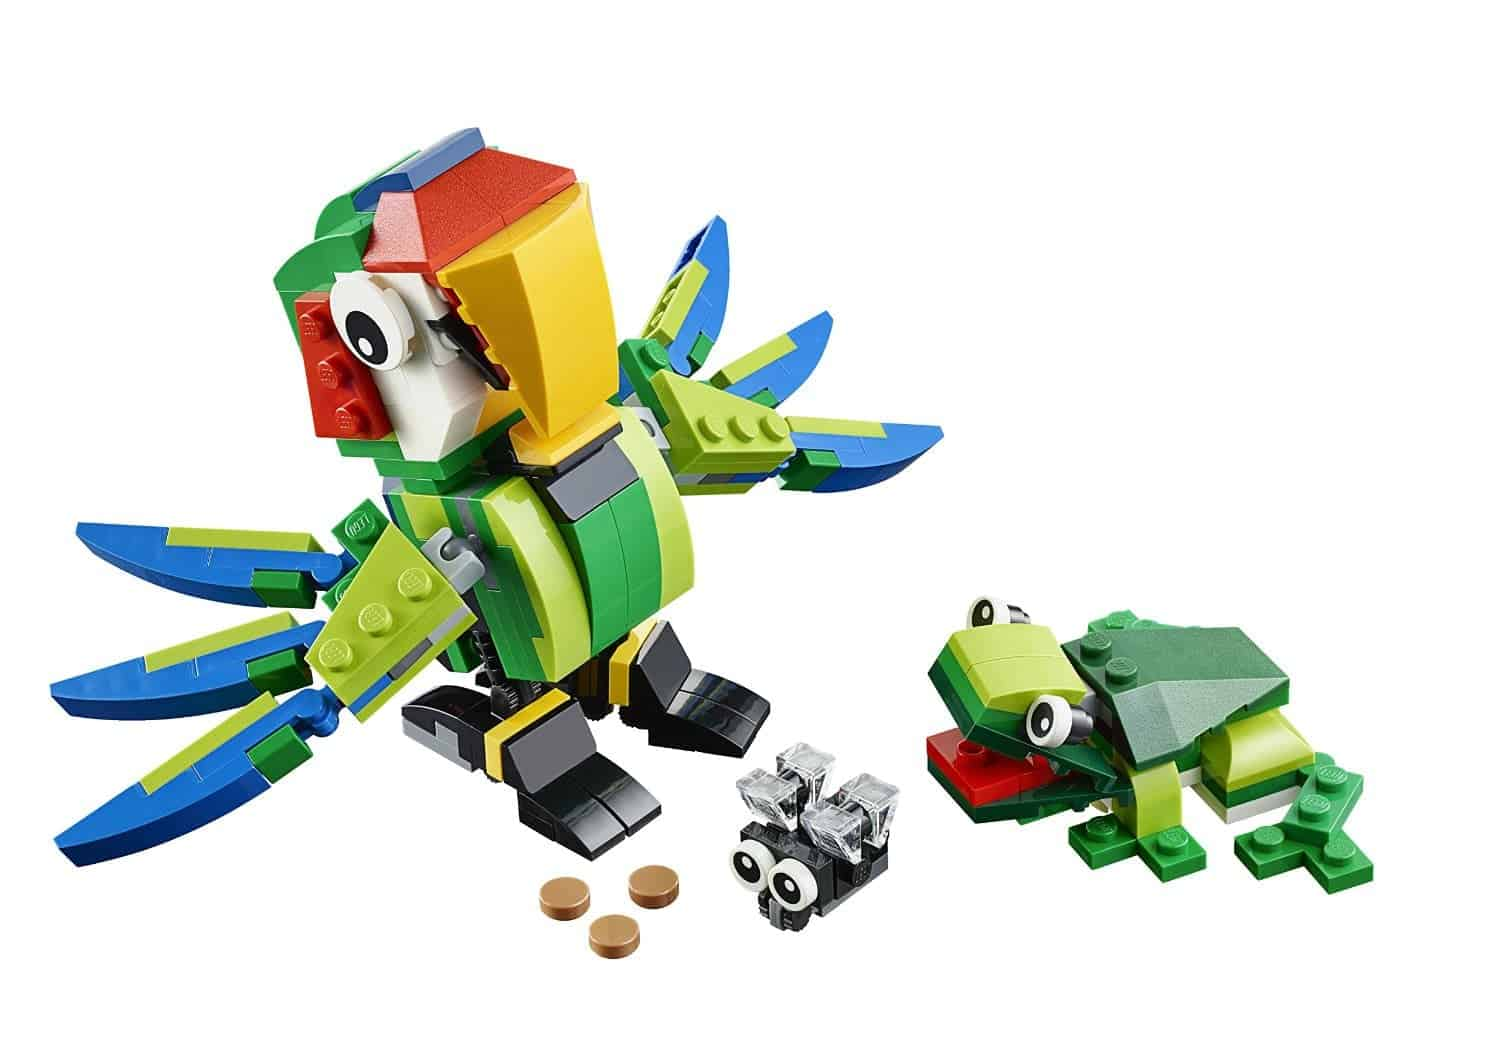 Lego Gift Ideas by Age - Toddler to Twelve Years: Rainforest Animals | www.thepinningmama.com